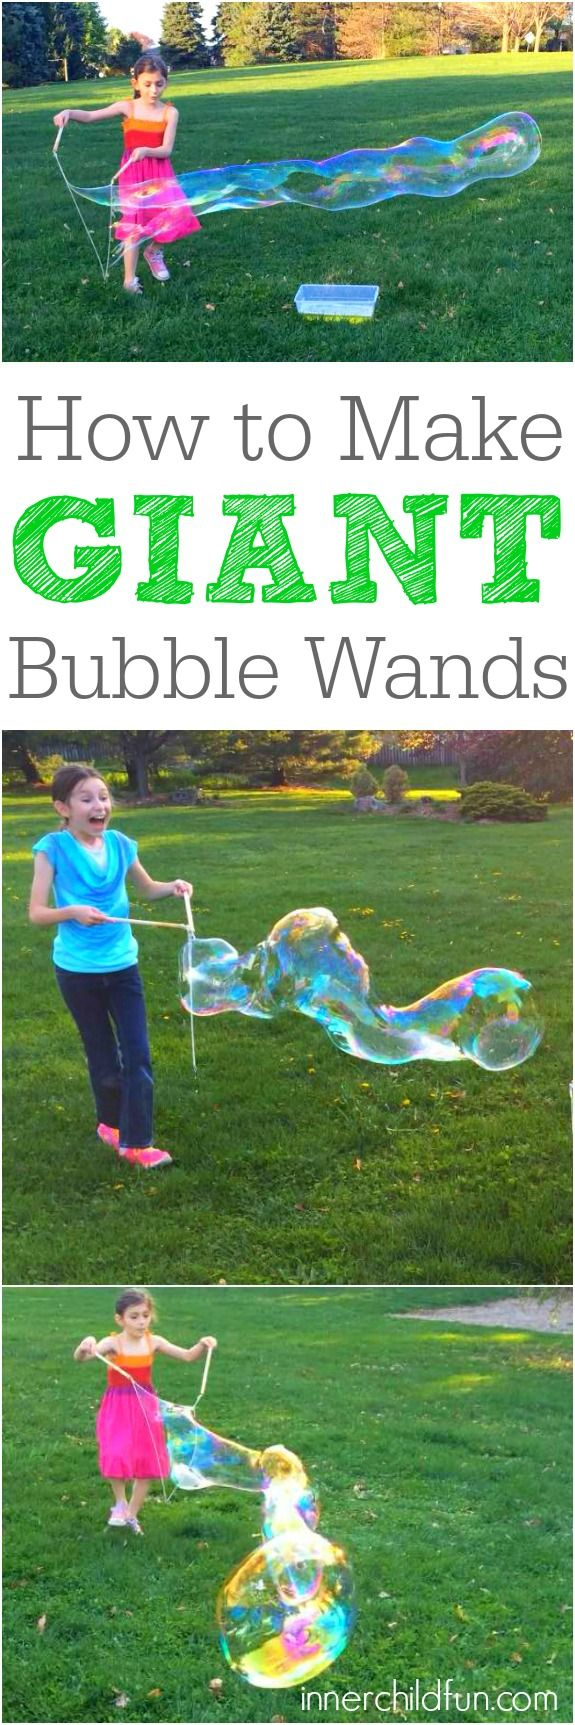 How to Make Giant Bubble Wands -- so cool!!